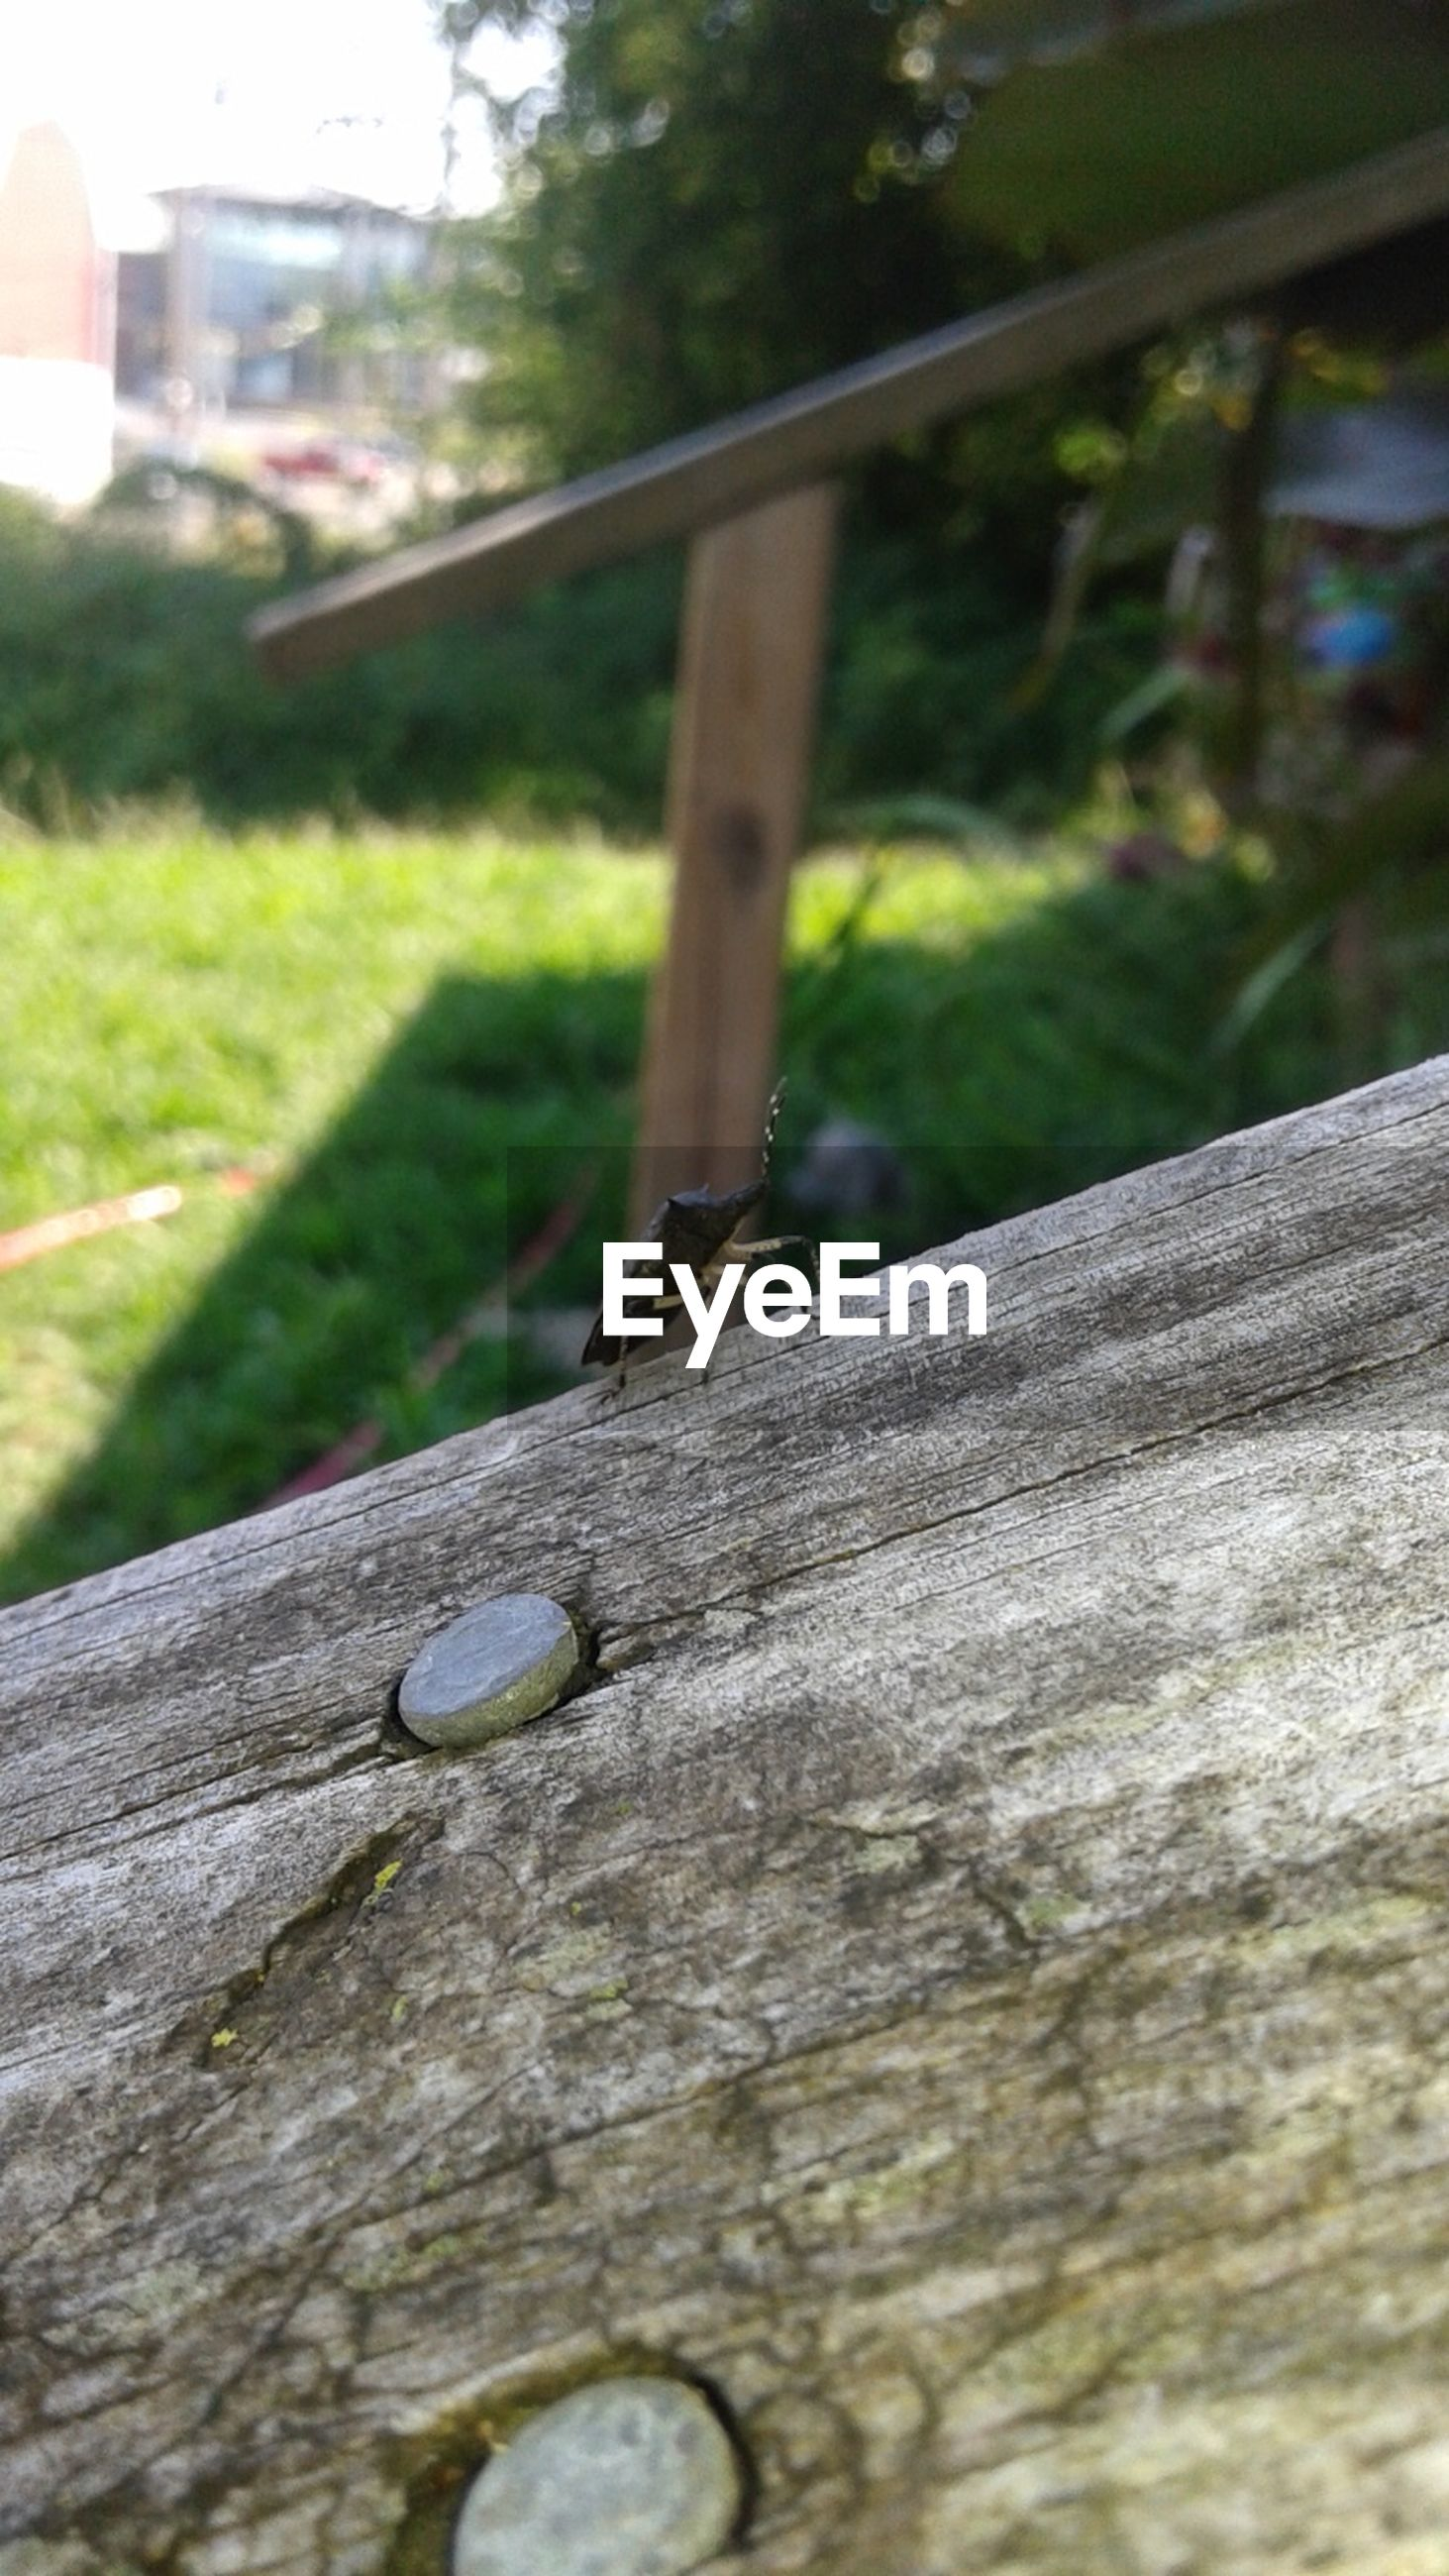 focus on foreground, close-up, tree trunk, tree, wood - material, textured, selective focus, part of, day, old, growth, metal, wooden, outdoors, cropped, weathered, wood, rusty, no people, built structure